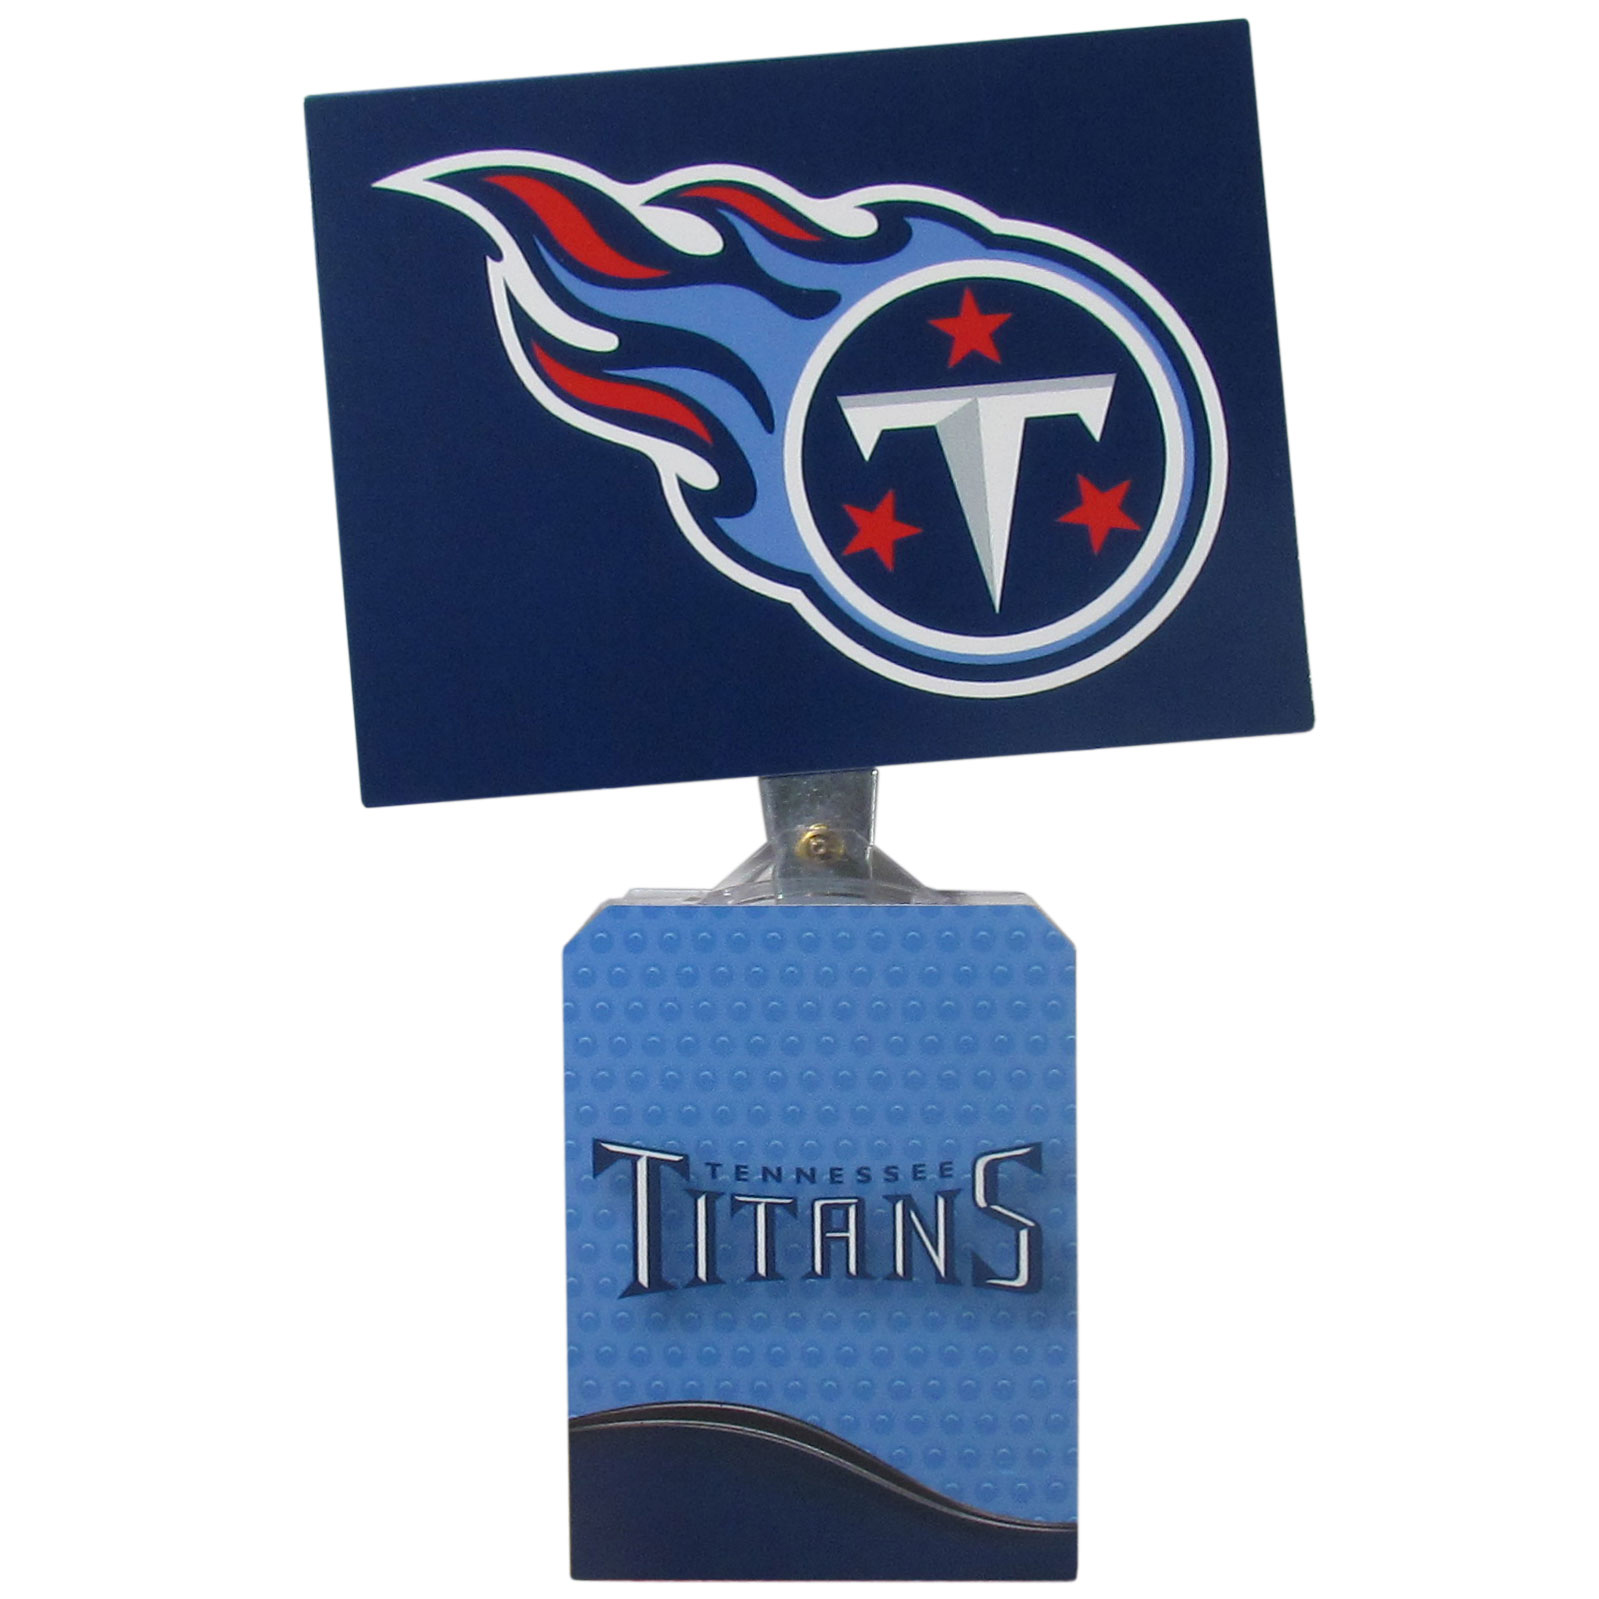 Tennessee Titans Solar Flags - Get pumped up on the way to game with Siskiyou's Chicago Bears Tennessee Titans Solar Flag that mounts to your dashboard or window. The in-motion solar flag also doubles as decoration for your tailgate or homegate! The base of the flag is 3 inches tall and the flag is 4 inches making the entire in-motion solar flag stand at 7 inches tall. Keep your spirit moving with your favorite team's Solar Flag.